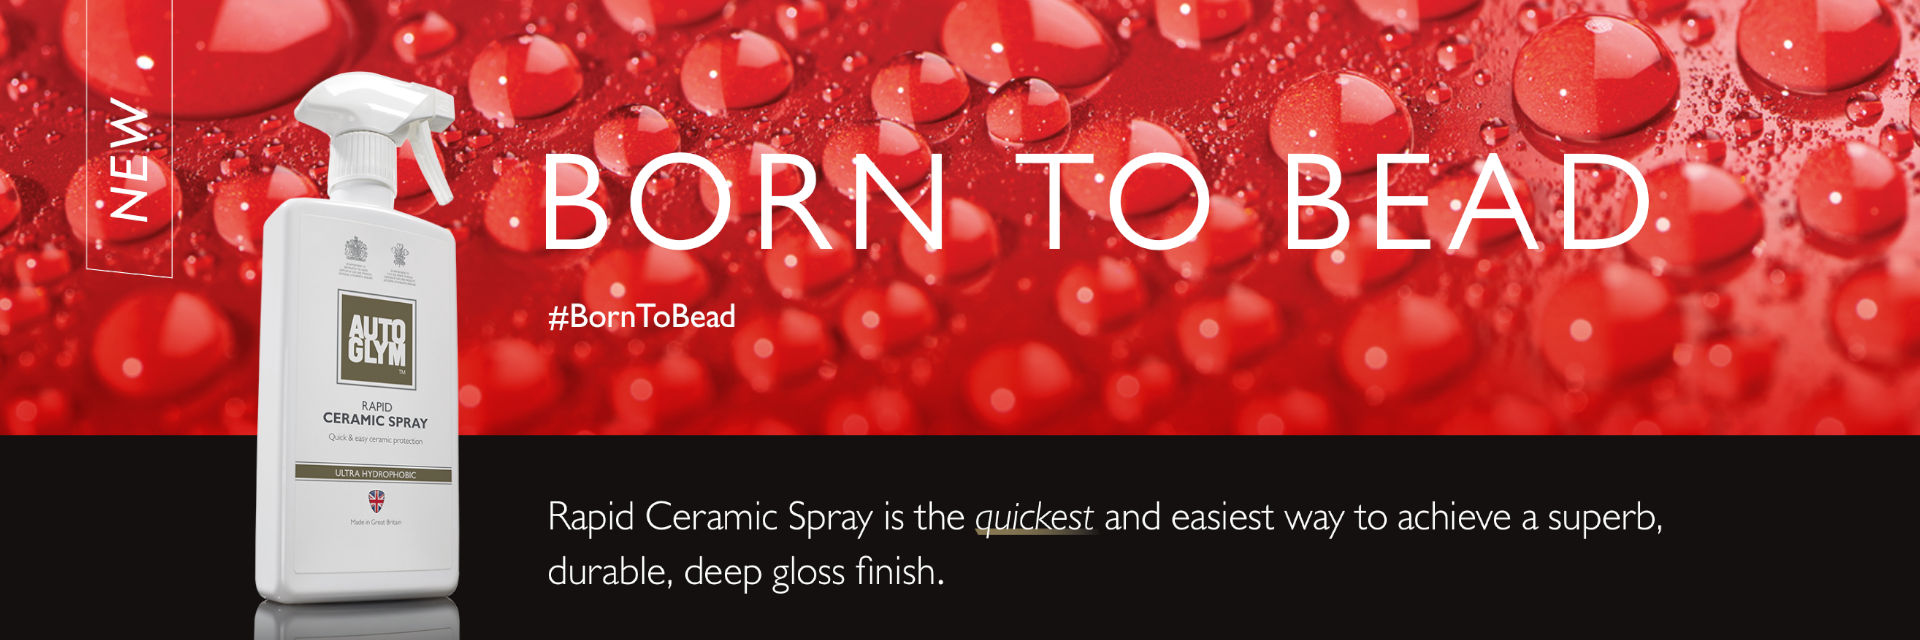 Autoglym Rapid Ceramic Spray is the quickest and easiest way to achieve a superb, durable, deep gloss finish.